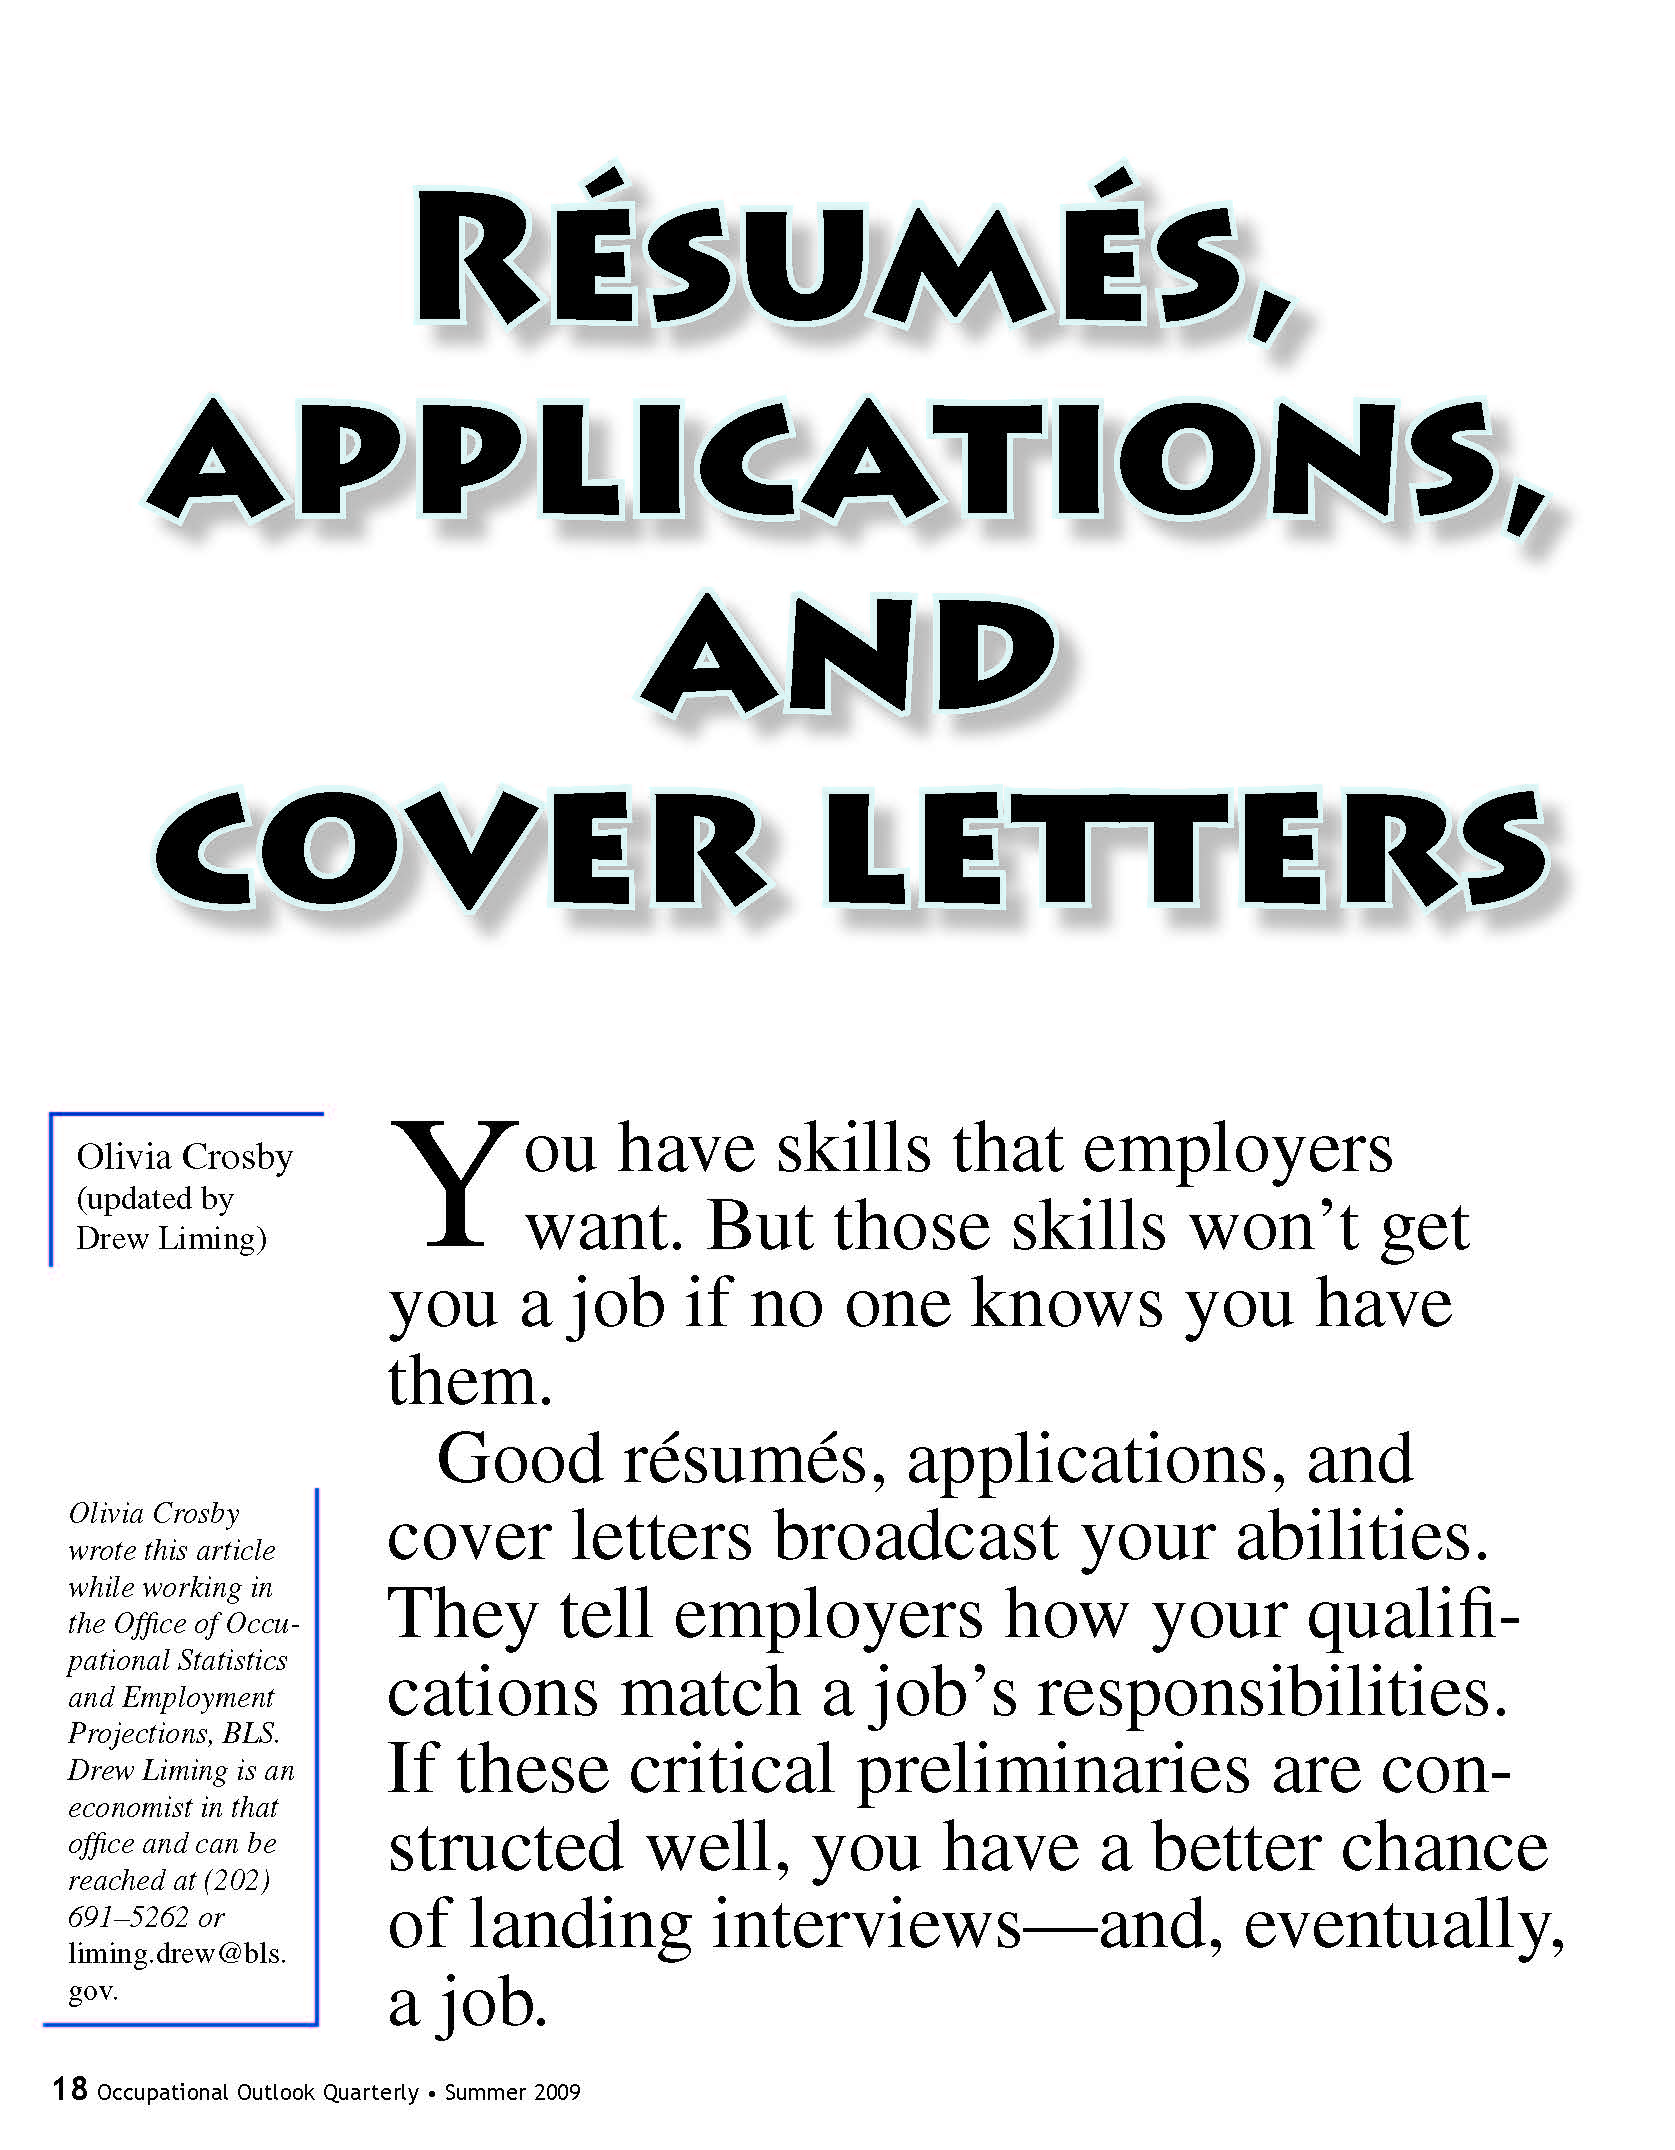 Resumes Applications And Cover Letters U S Government Bookstore